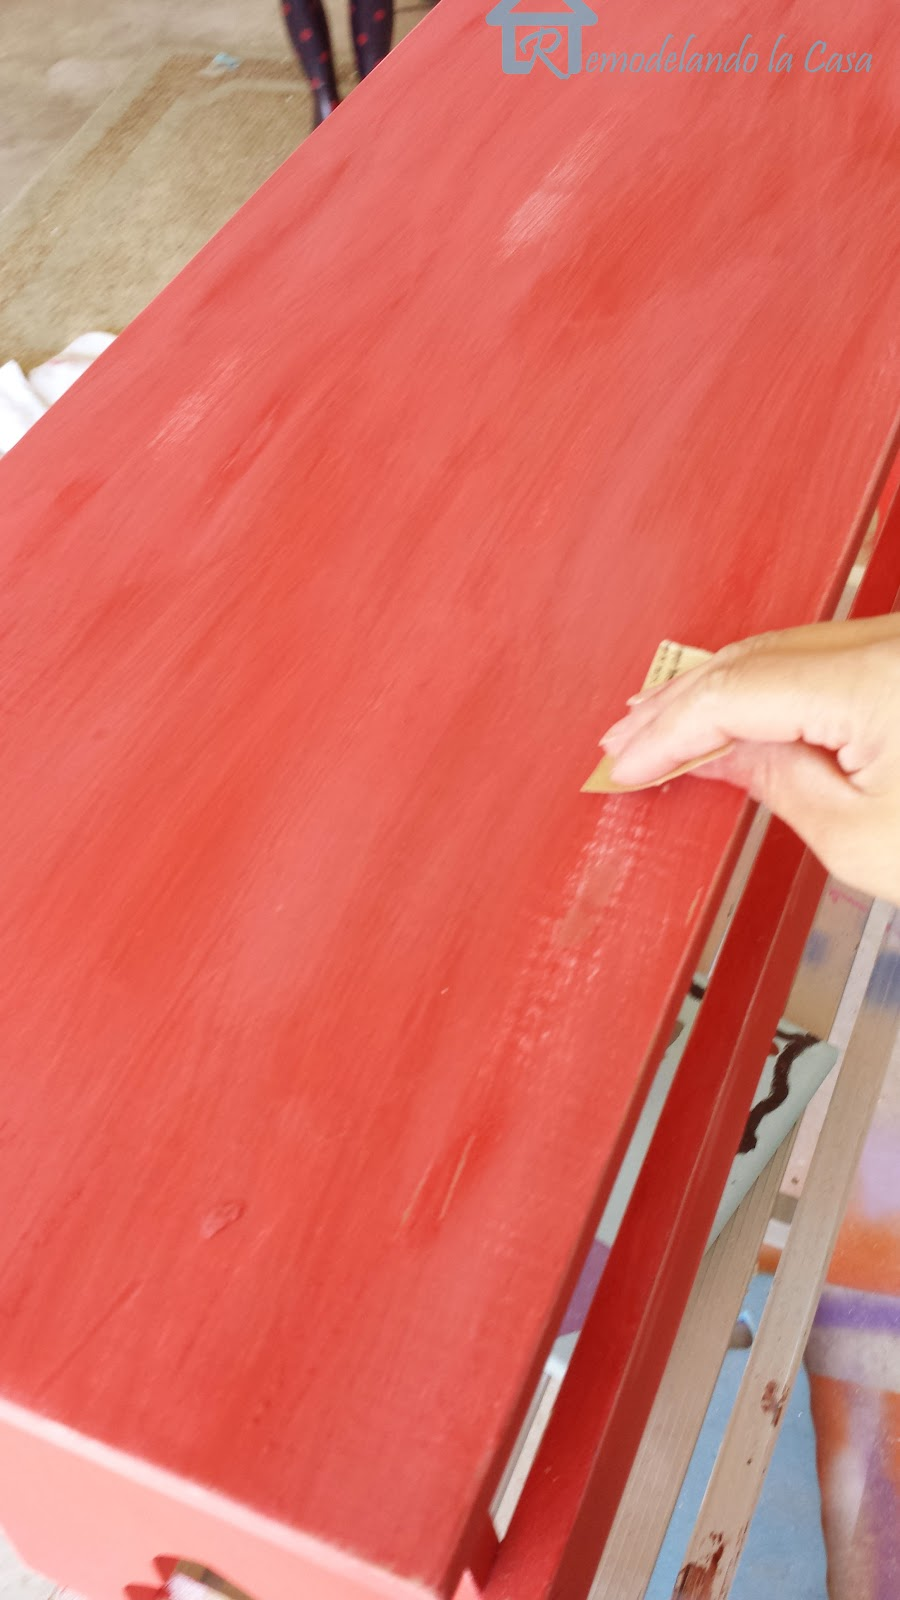 sand paper used to distress red painted bench